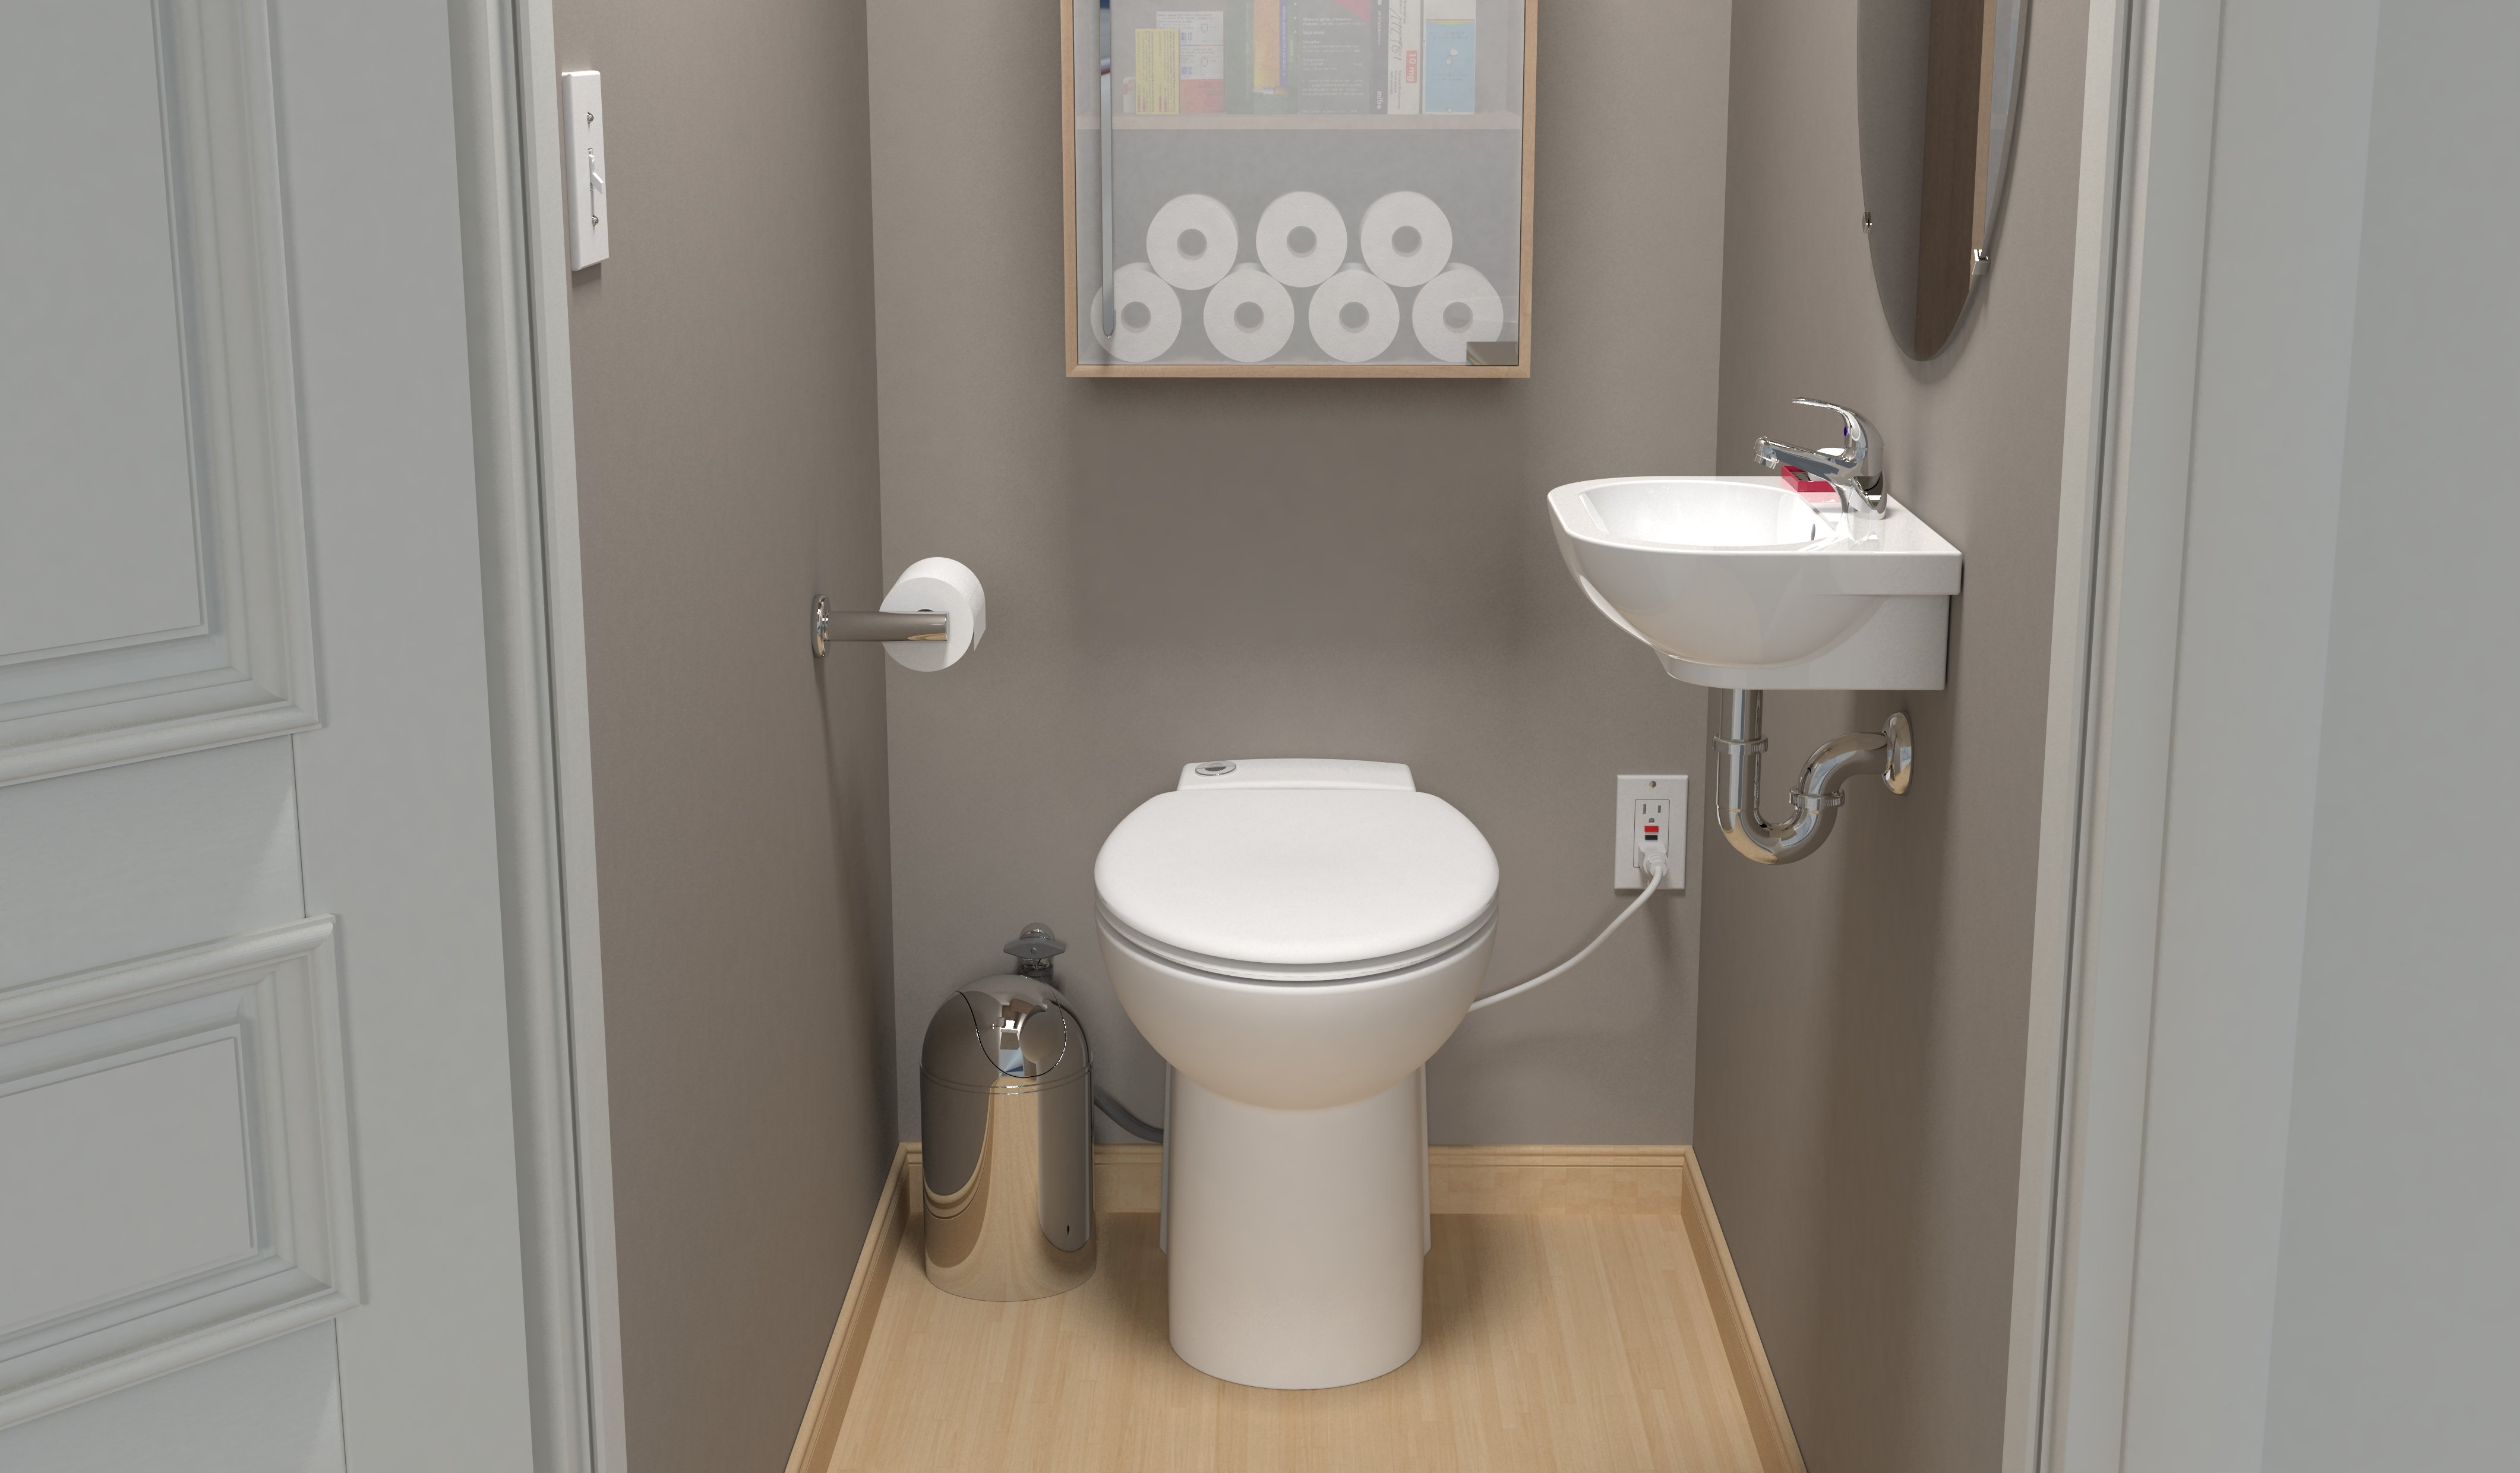 saturn itm oqiw back toilet in modern gallery wc saniflo round default pan close n bathroom product white wall mount sanicompact macerator pump built btw ceramica seat to soft with top